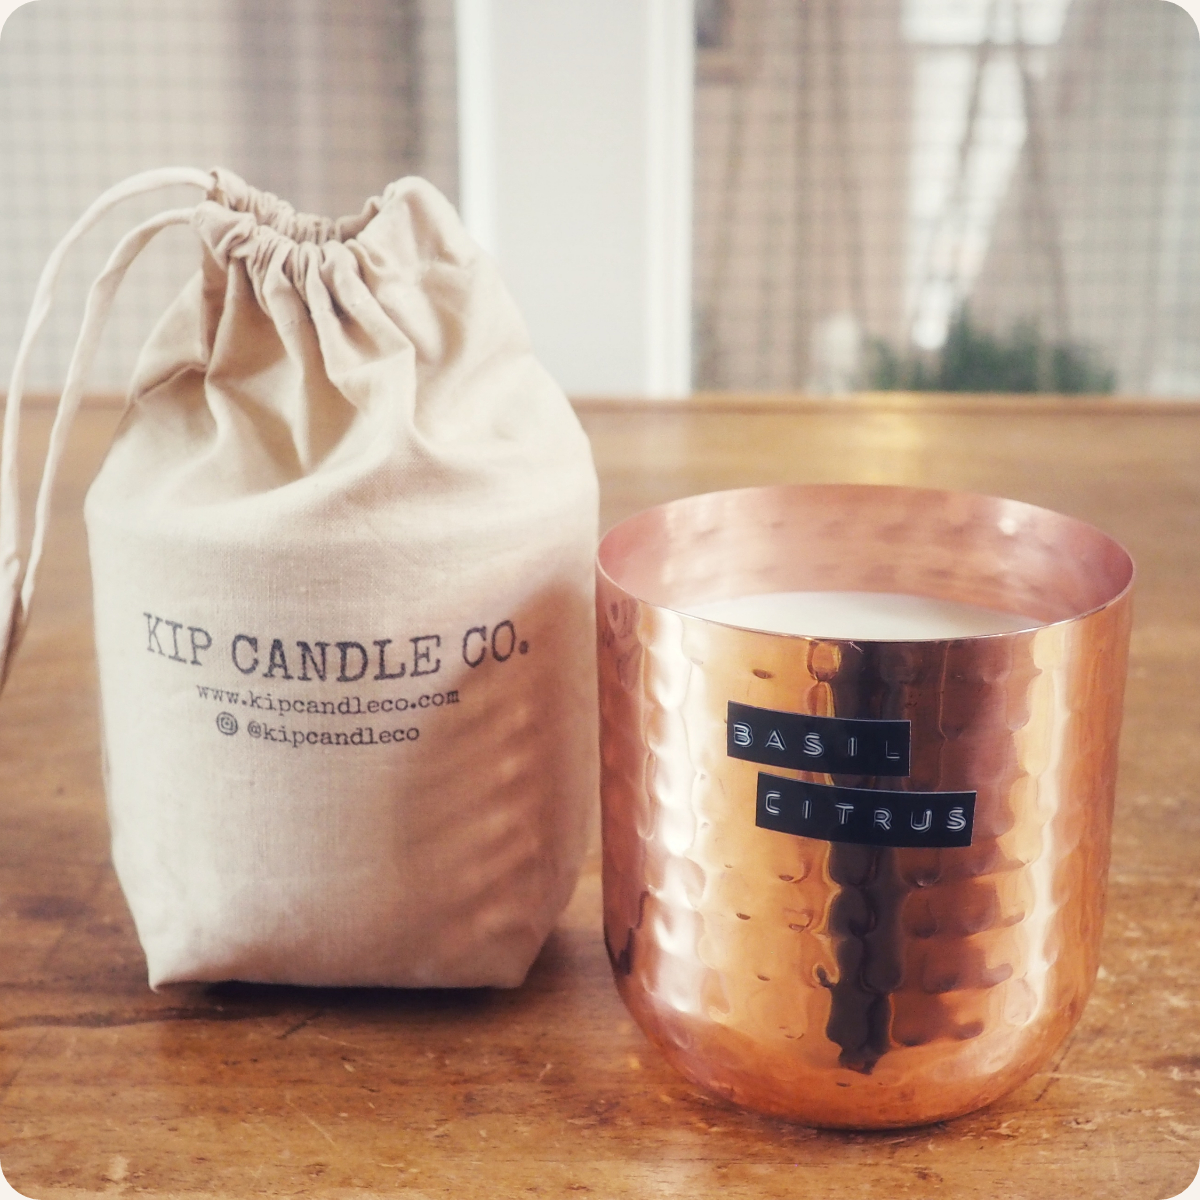 Basil Citrus Original Hammered Copper Candle.